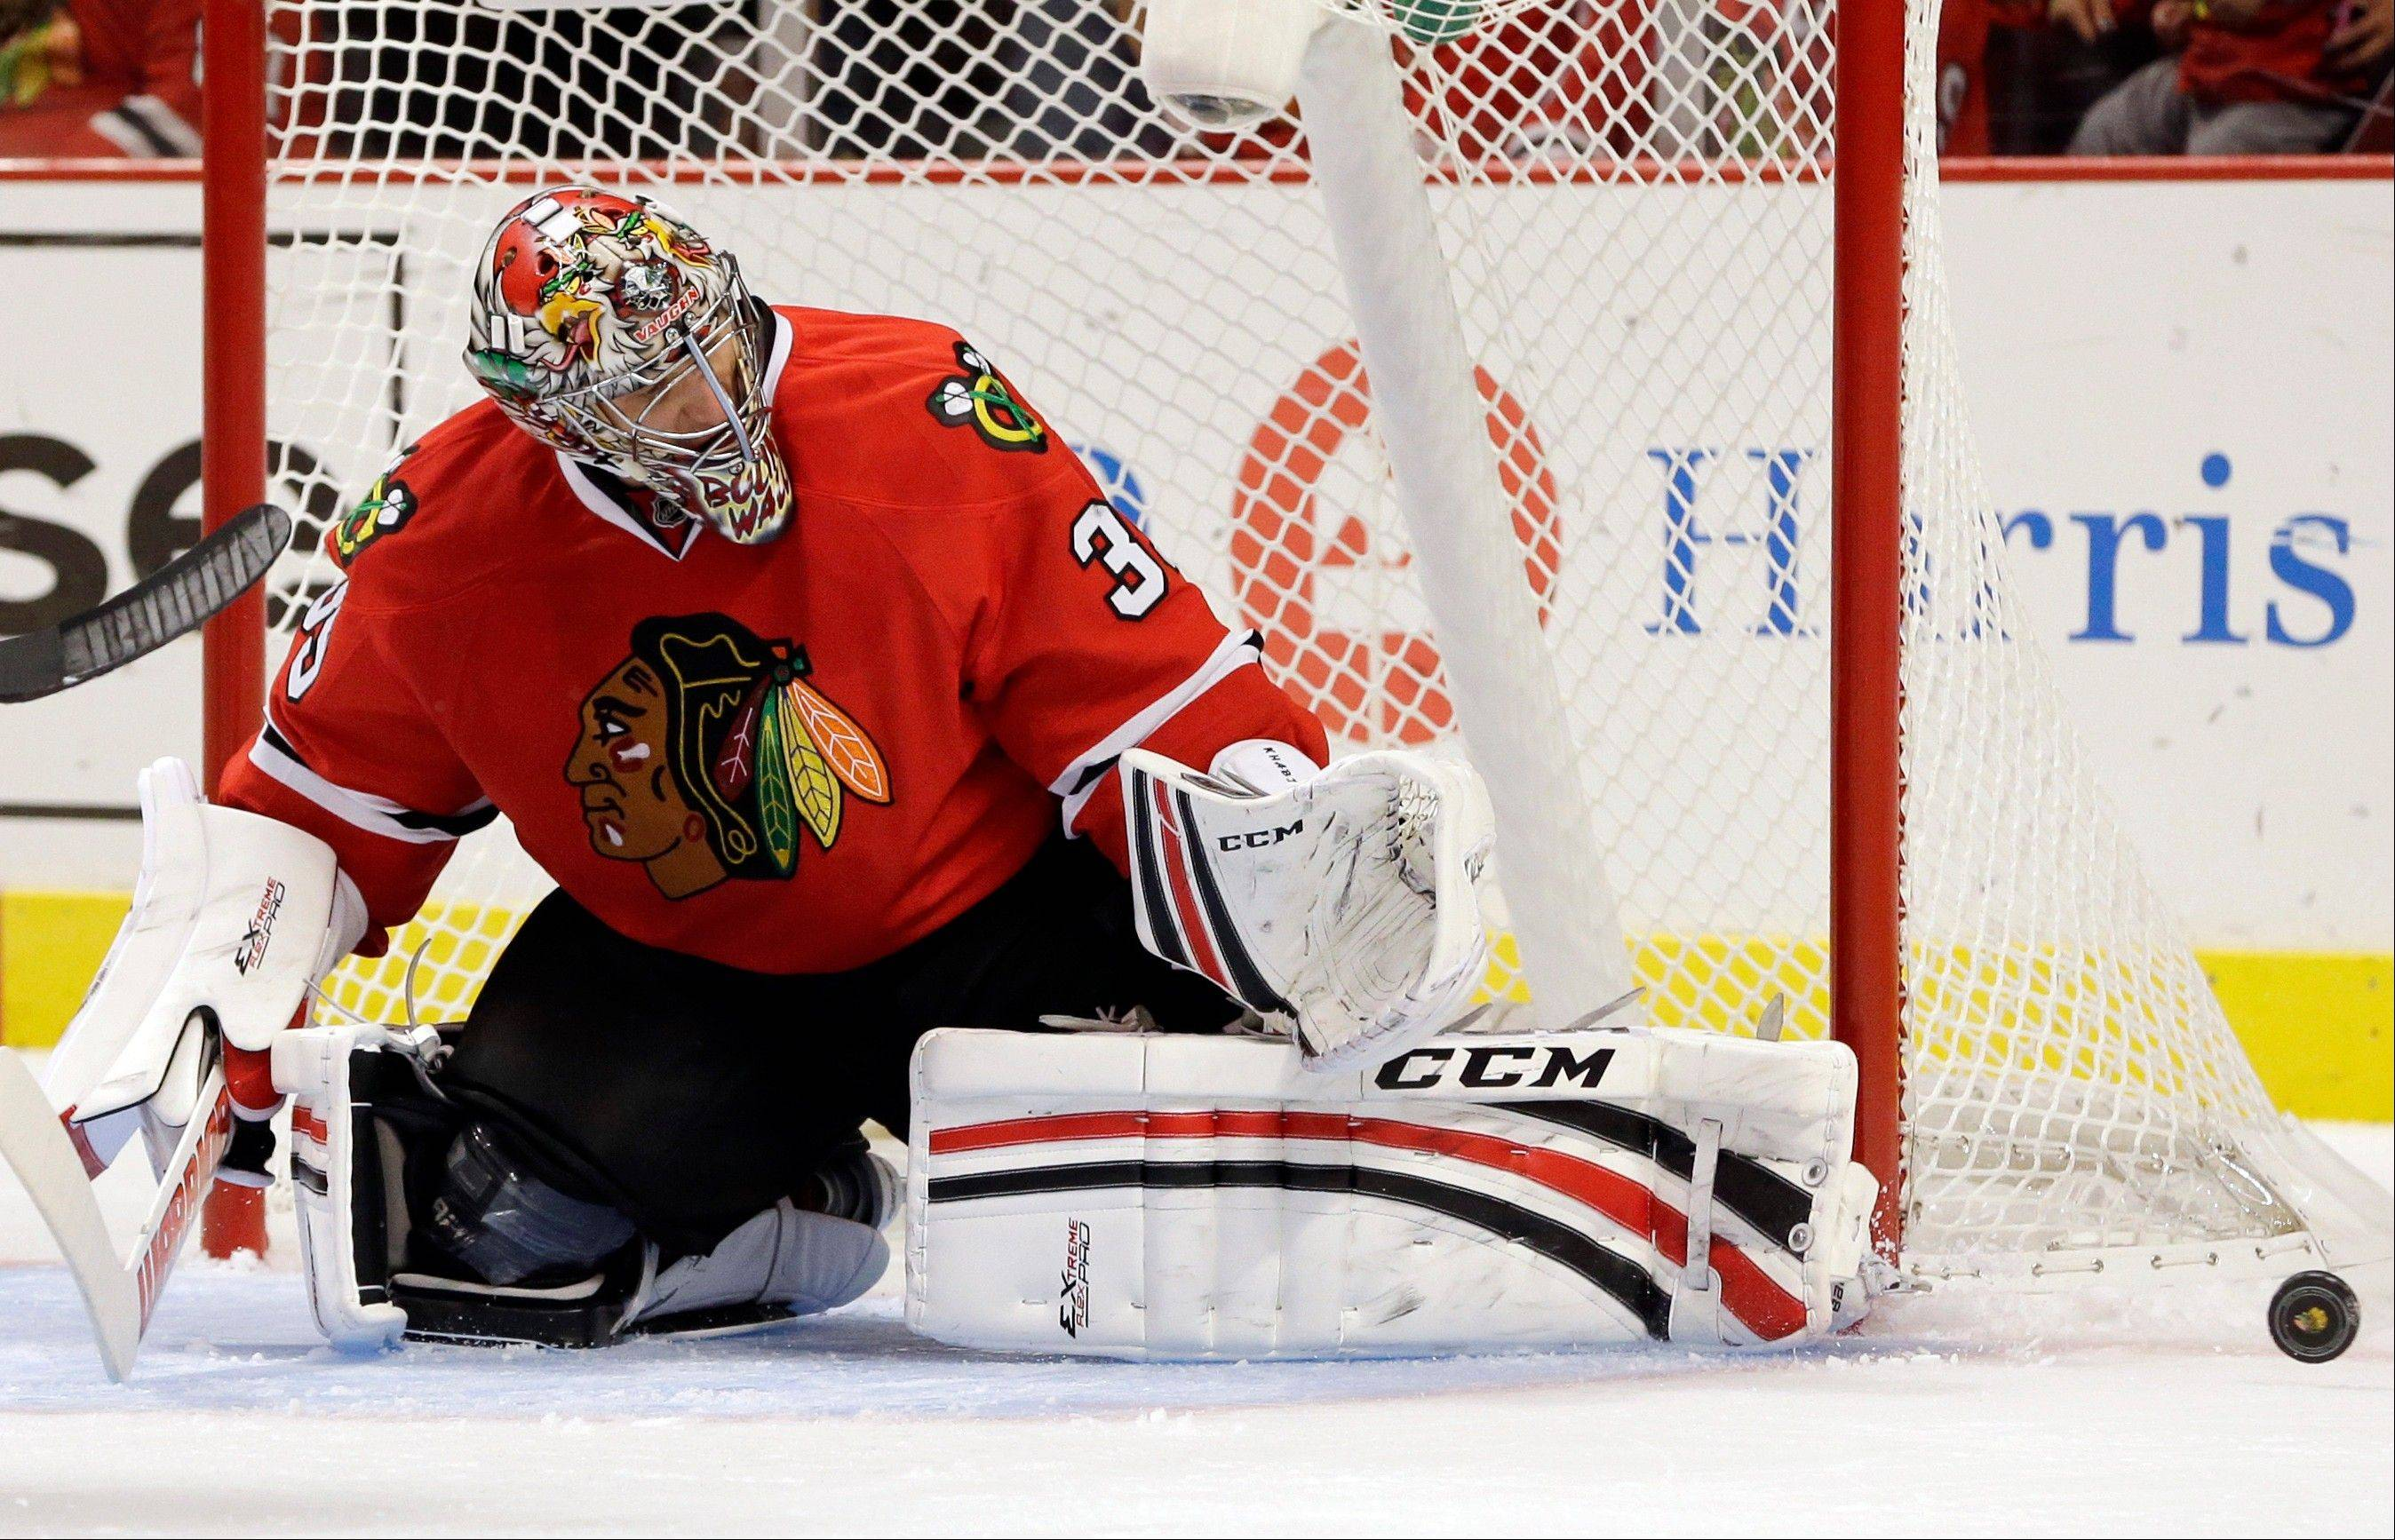 Blackhawks goalie Nikolai Khabibulin will miss four to five months after having shoulder surgery on Tuesday.